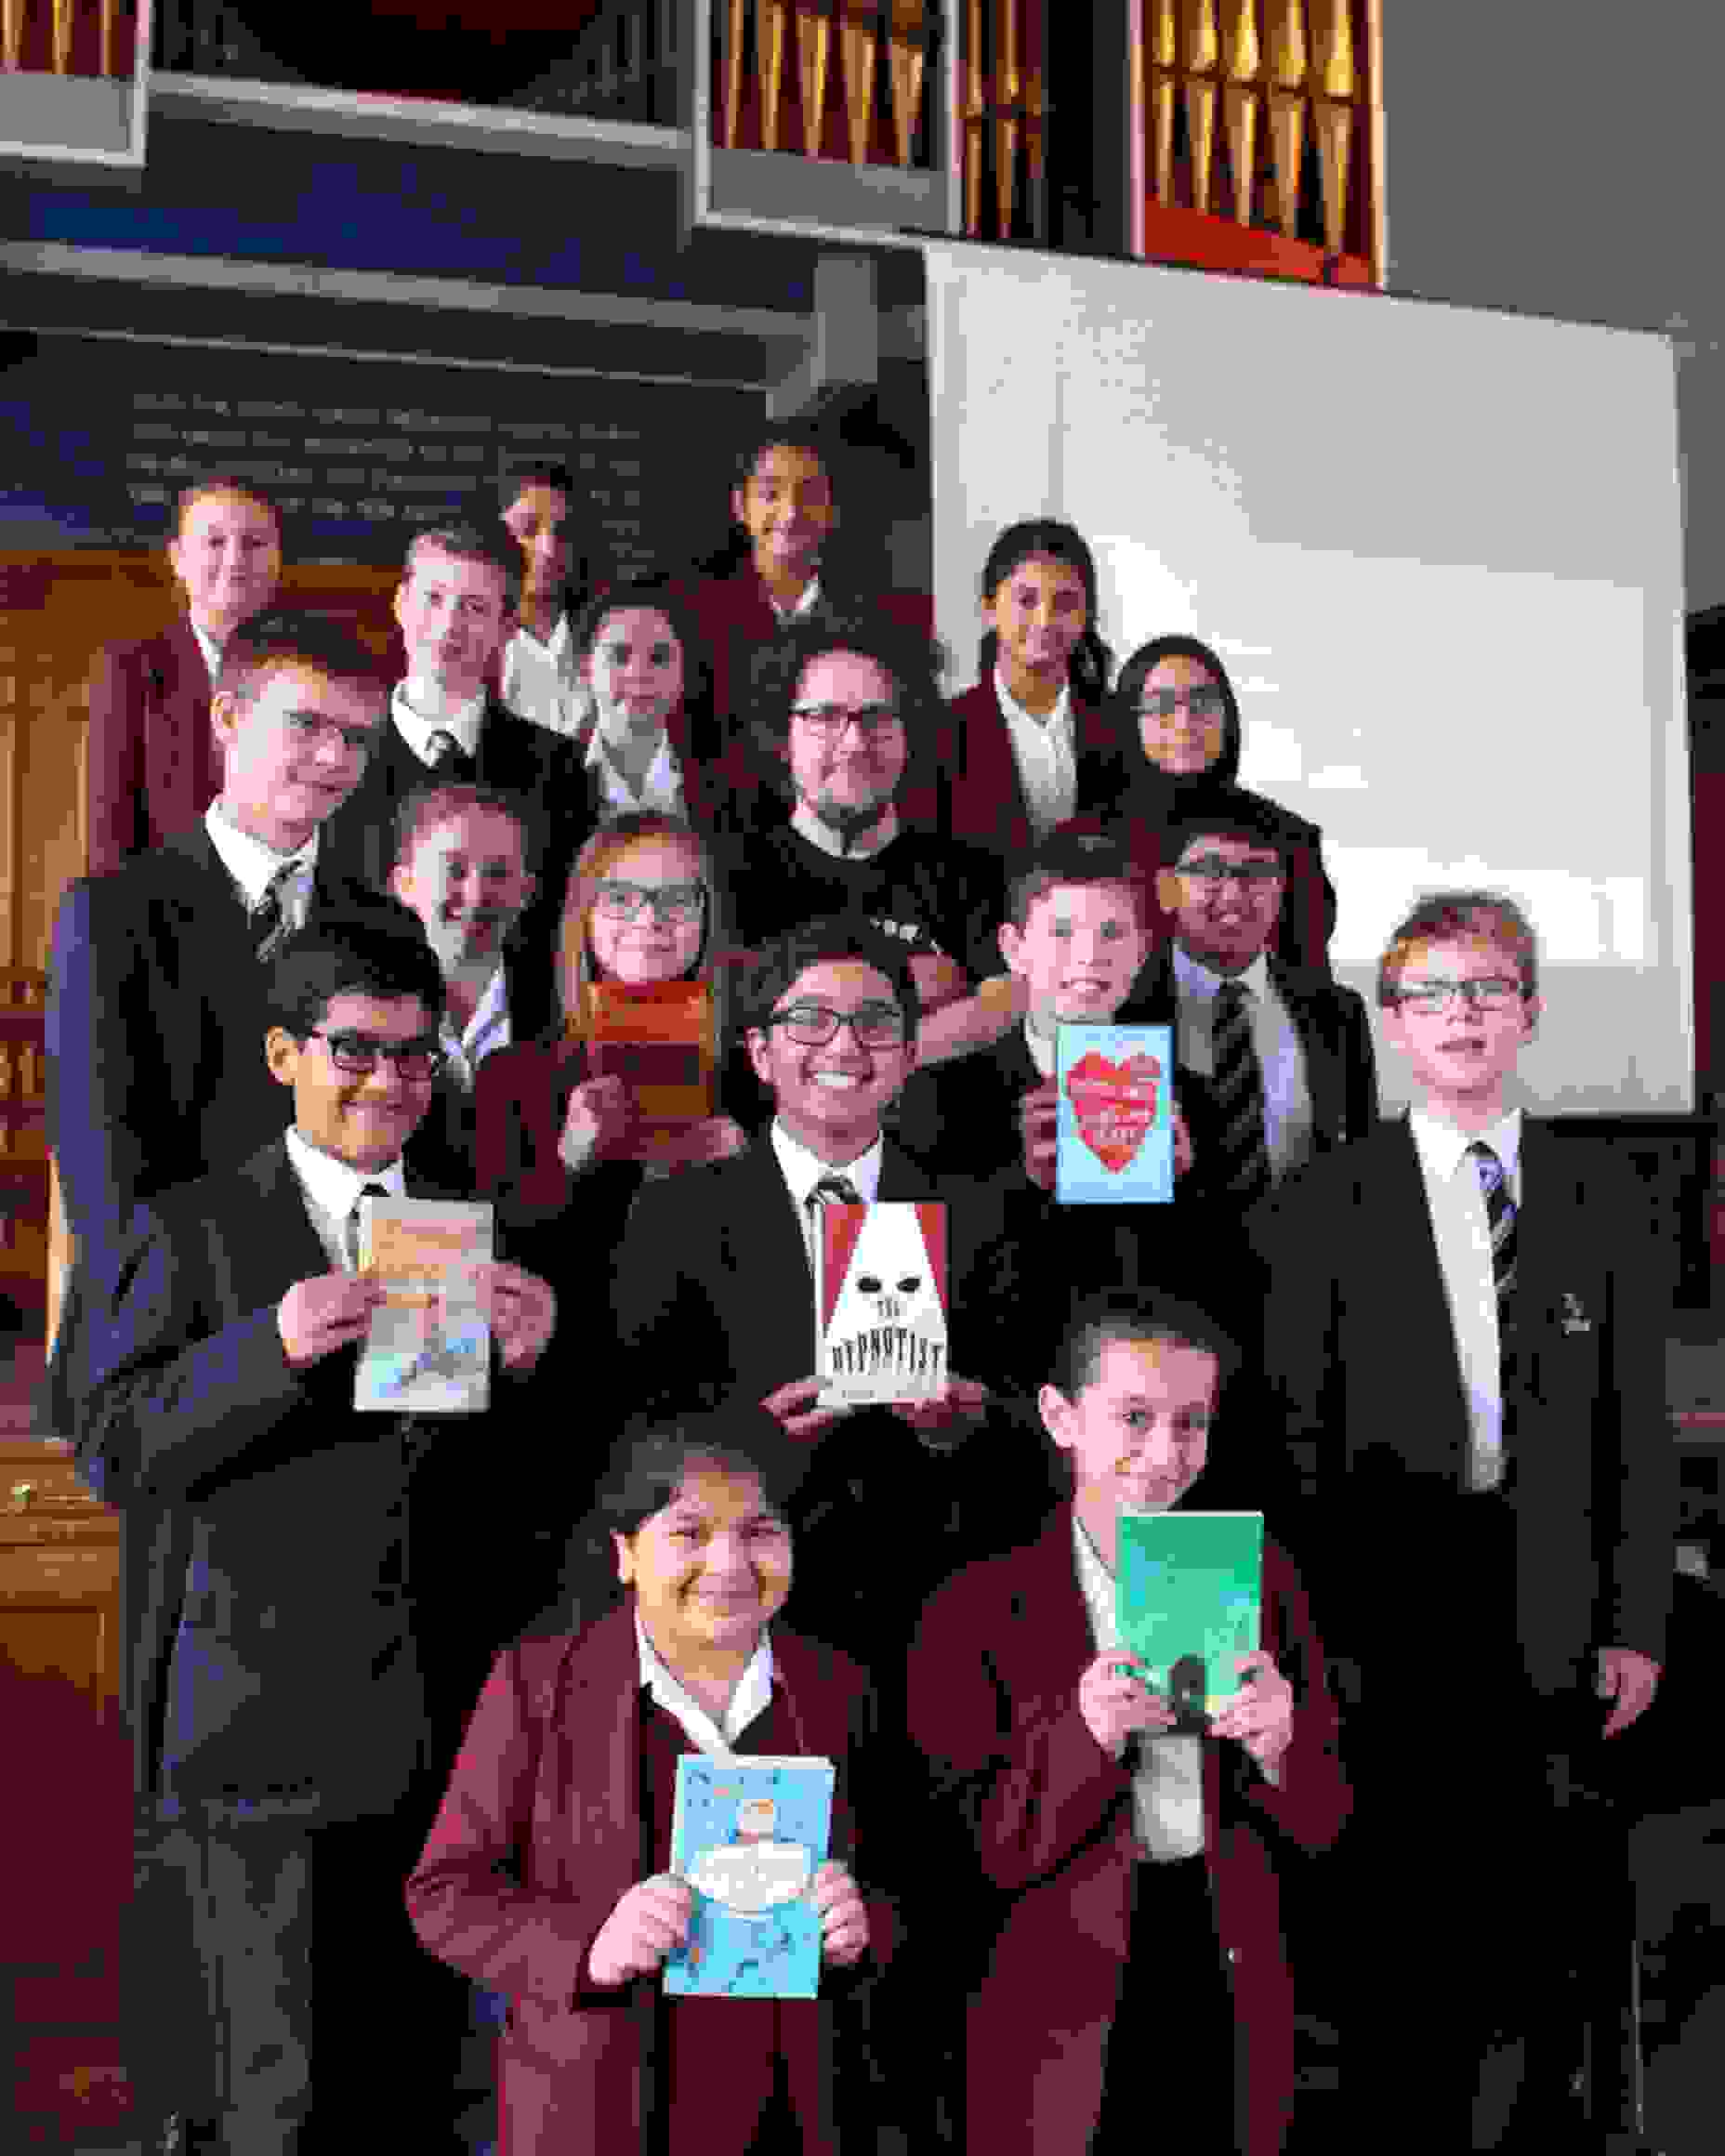 BCFA pupils with books and Matt Killeen